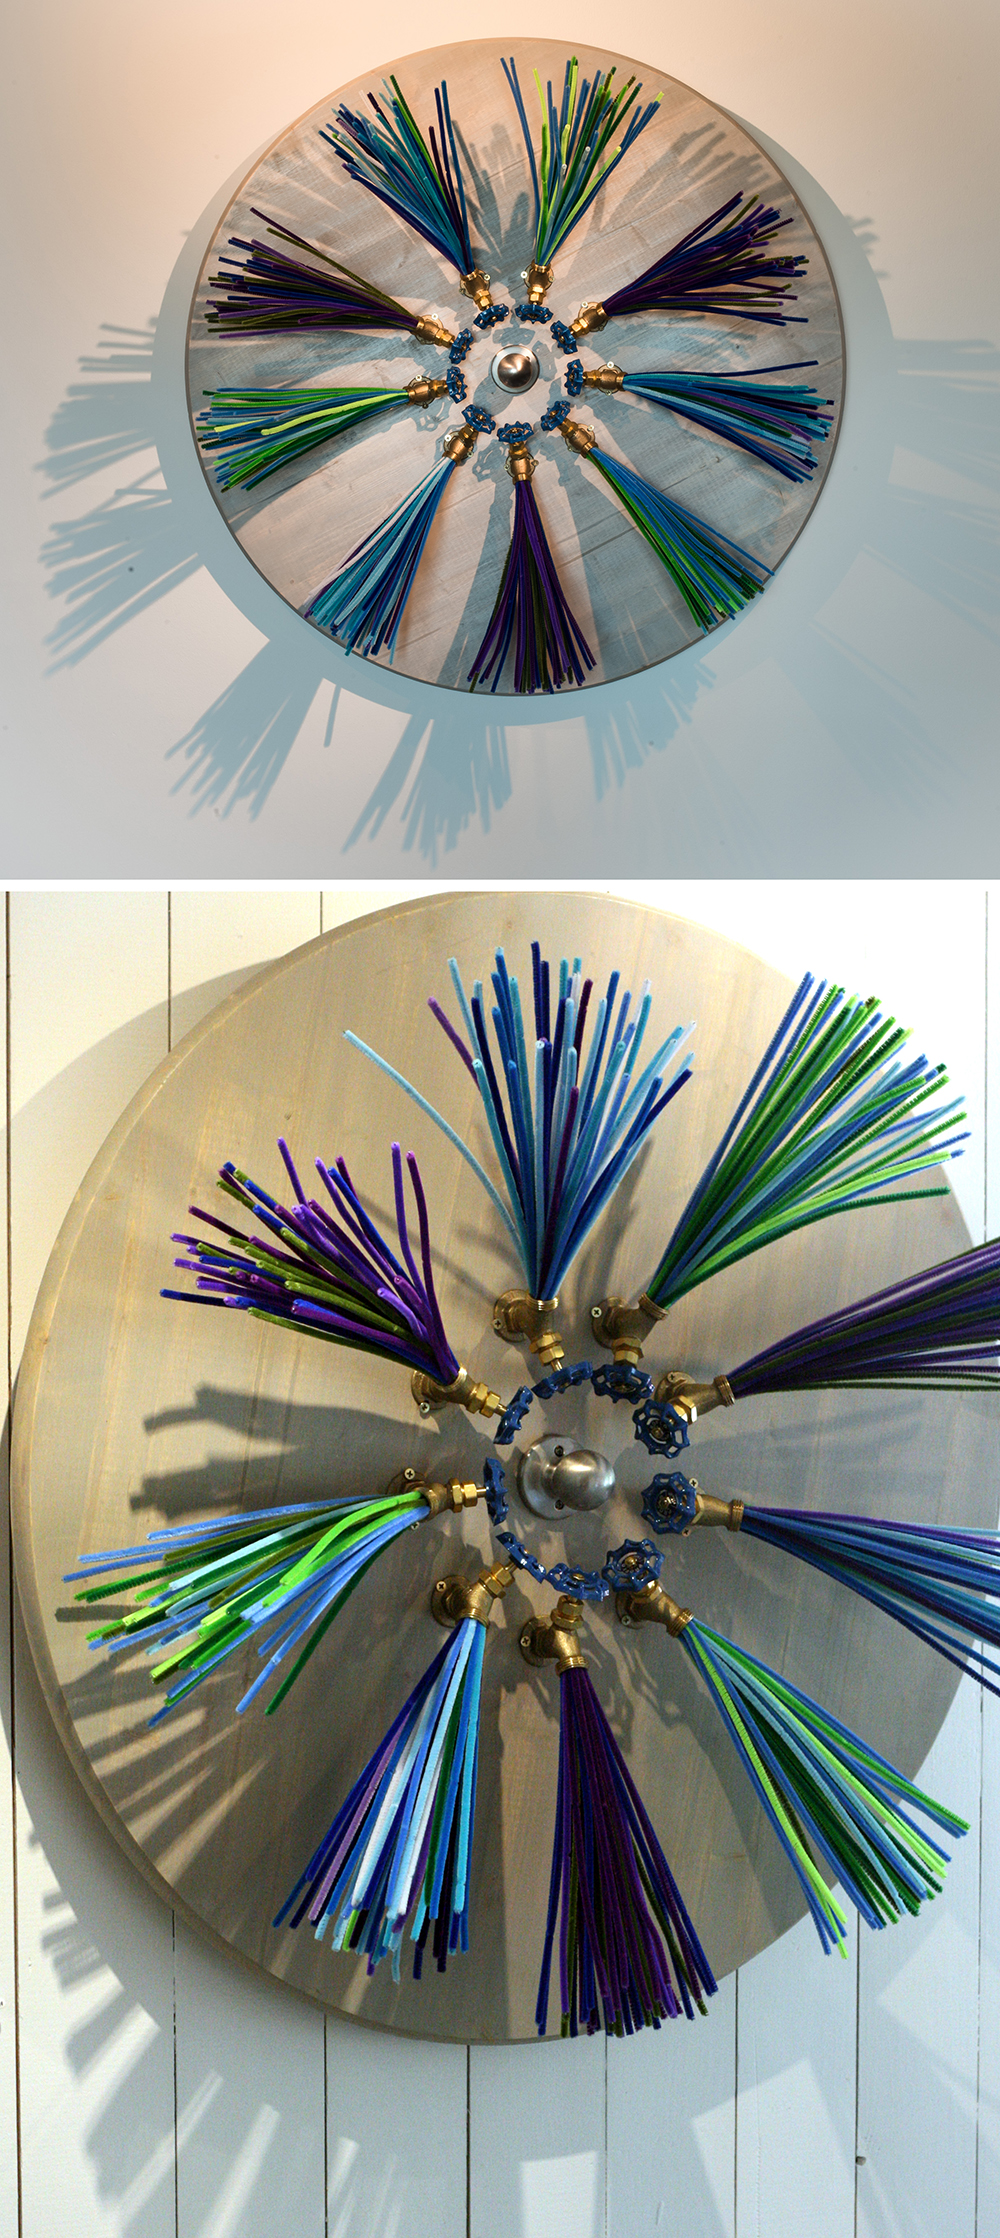 Water Wheel - Mixed Media3′ diameter2015It spins! Check out the video here:https://www.youtube.com/watch?v=wzG0nPDUyfk**Available for purchaseExhibited at:Gallery 701 at the Long Center, January – October, 2016 (Austin, Texas)Art for the People, May – June, 2015 (Austin, Texas)I am interested in power – whether it is the power of relationships or the literal interpretation of power that makes things run. This piece is my take on the water wheel that has played such a major role in our history, from the windmills that provided water to the rural communities, to the paddleboats navigating through the rivers. I have created this work for the viewer to spin, and have fun with the interaction it provides.